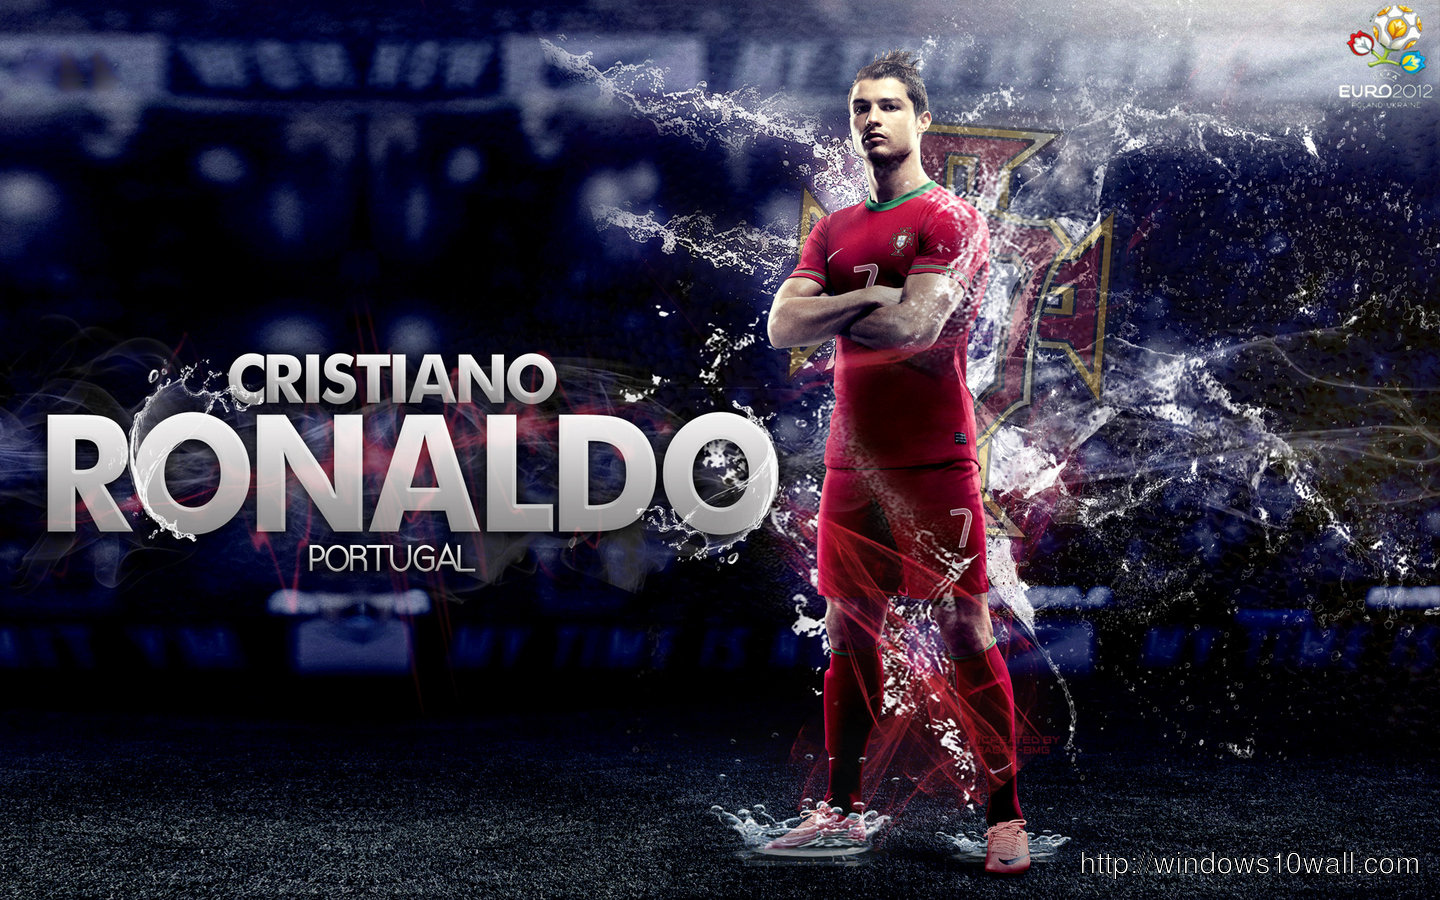 New Cristiano Ronaldo Portugal HD Wallpaper